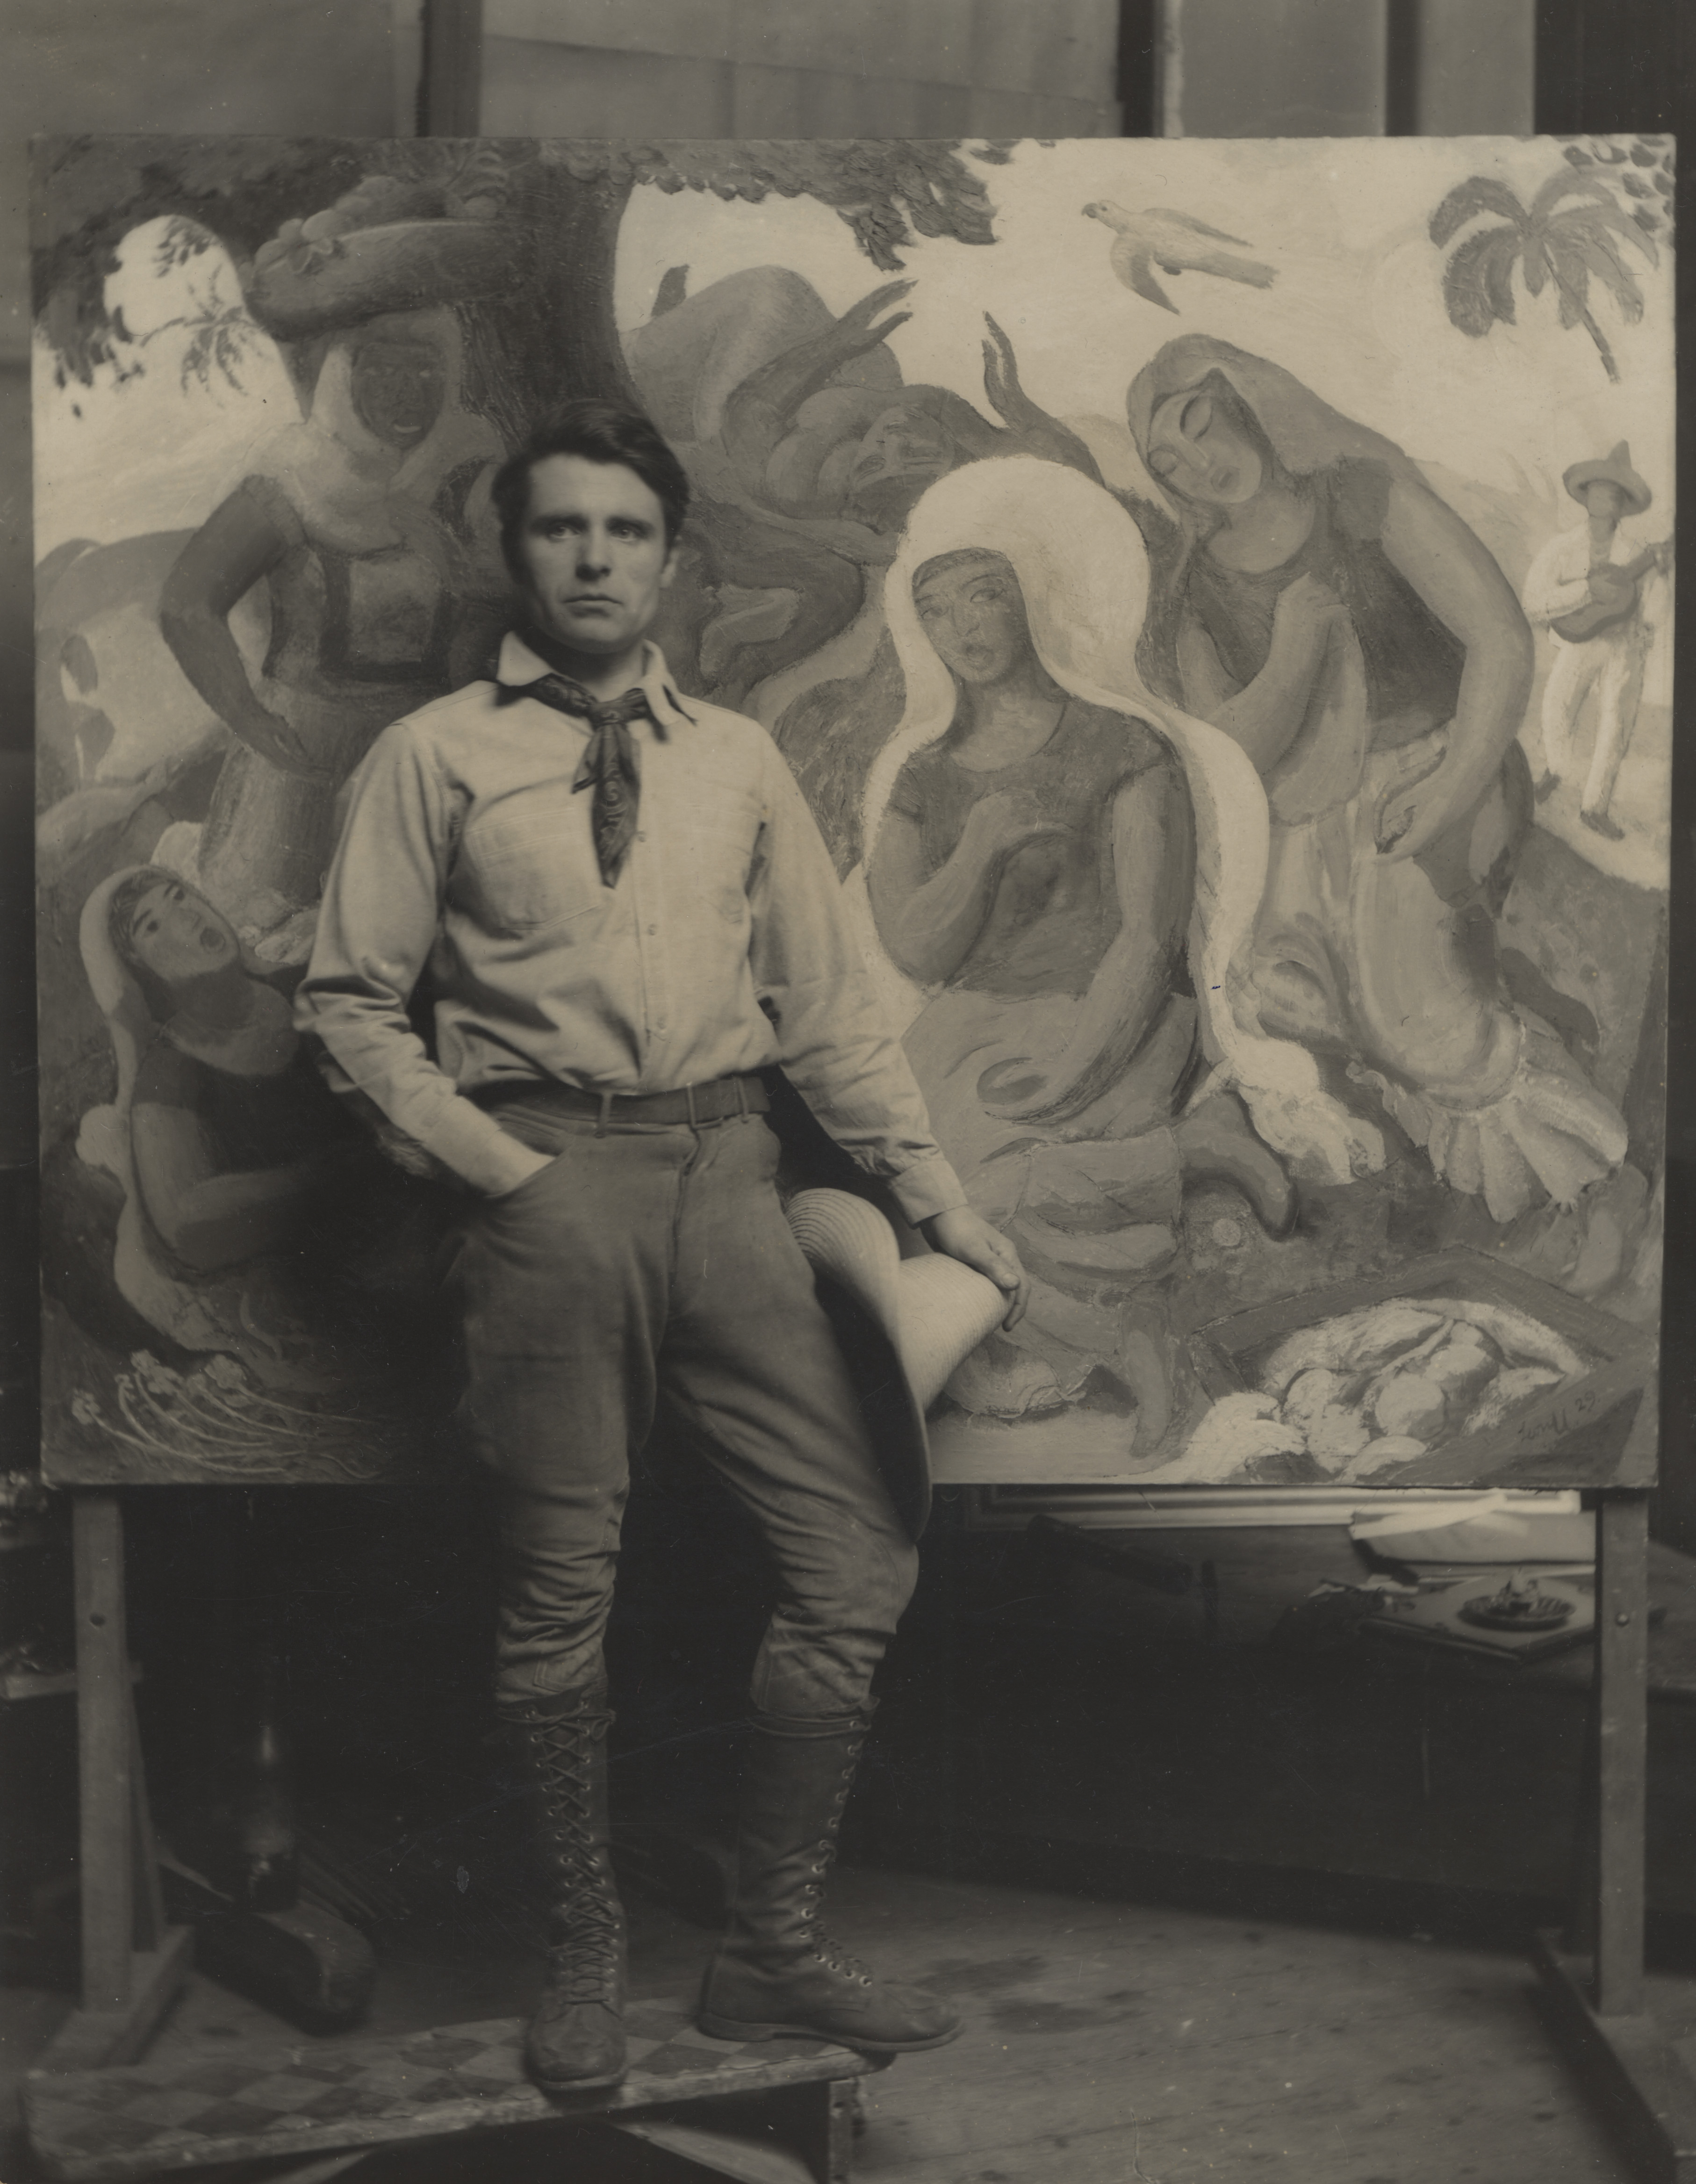 Leon Underwood © Estate of Leon Underwood and the Redfern Gallery, London